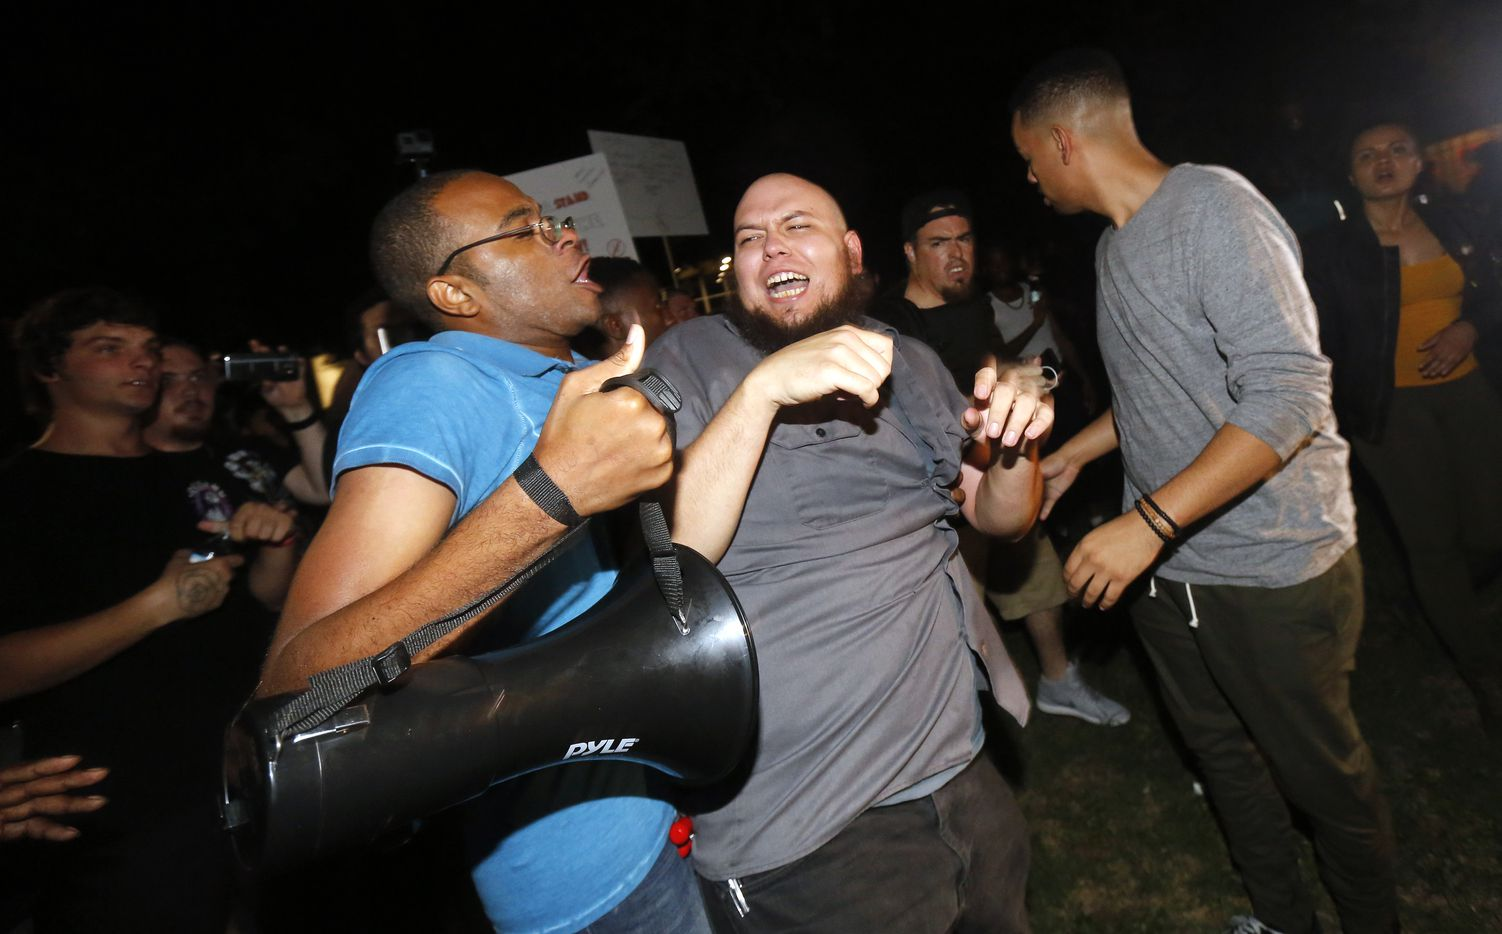 Aaron Cartwright of Dallas (left) and Andre Nihilist of Fort Worth clash during a protest at Pioneer Park, across the street form the March Against White Supremacy rally.